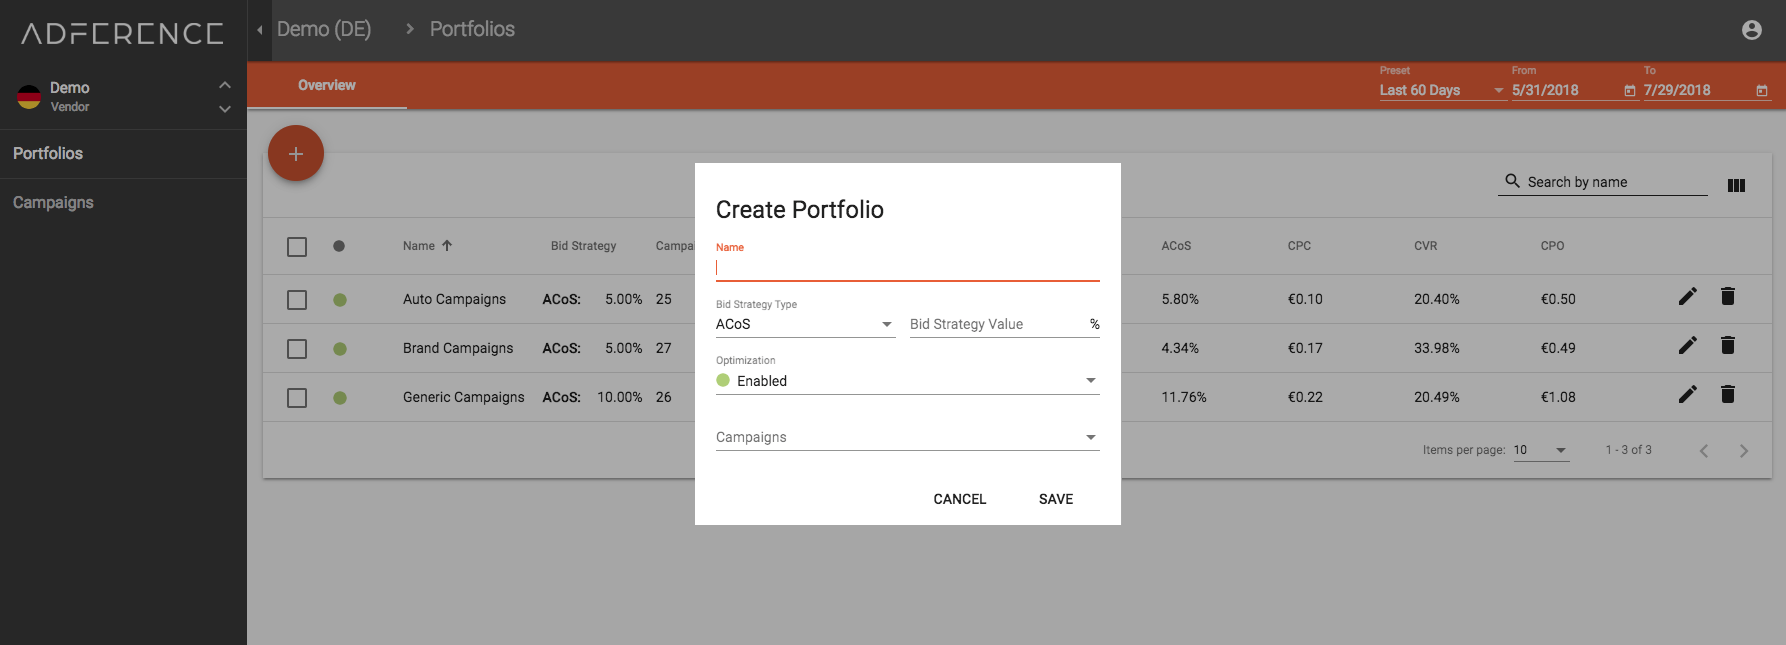 Group and manage your campaigns in portfolios